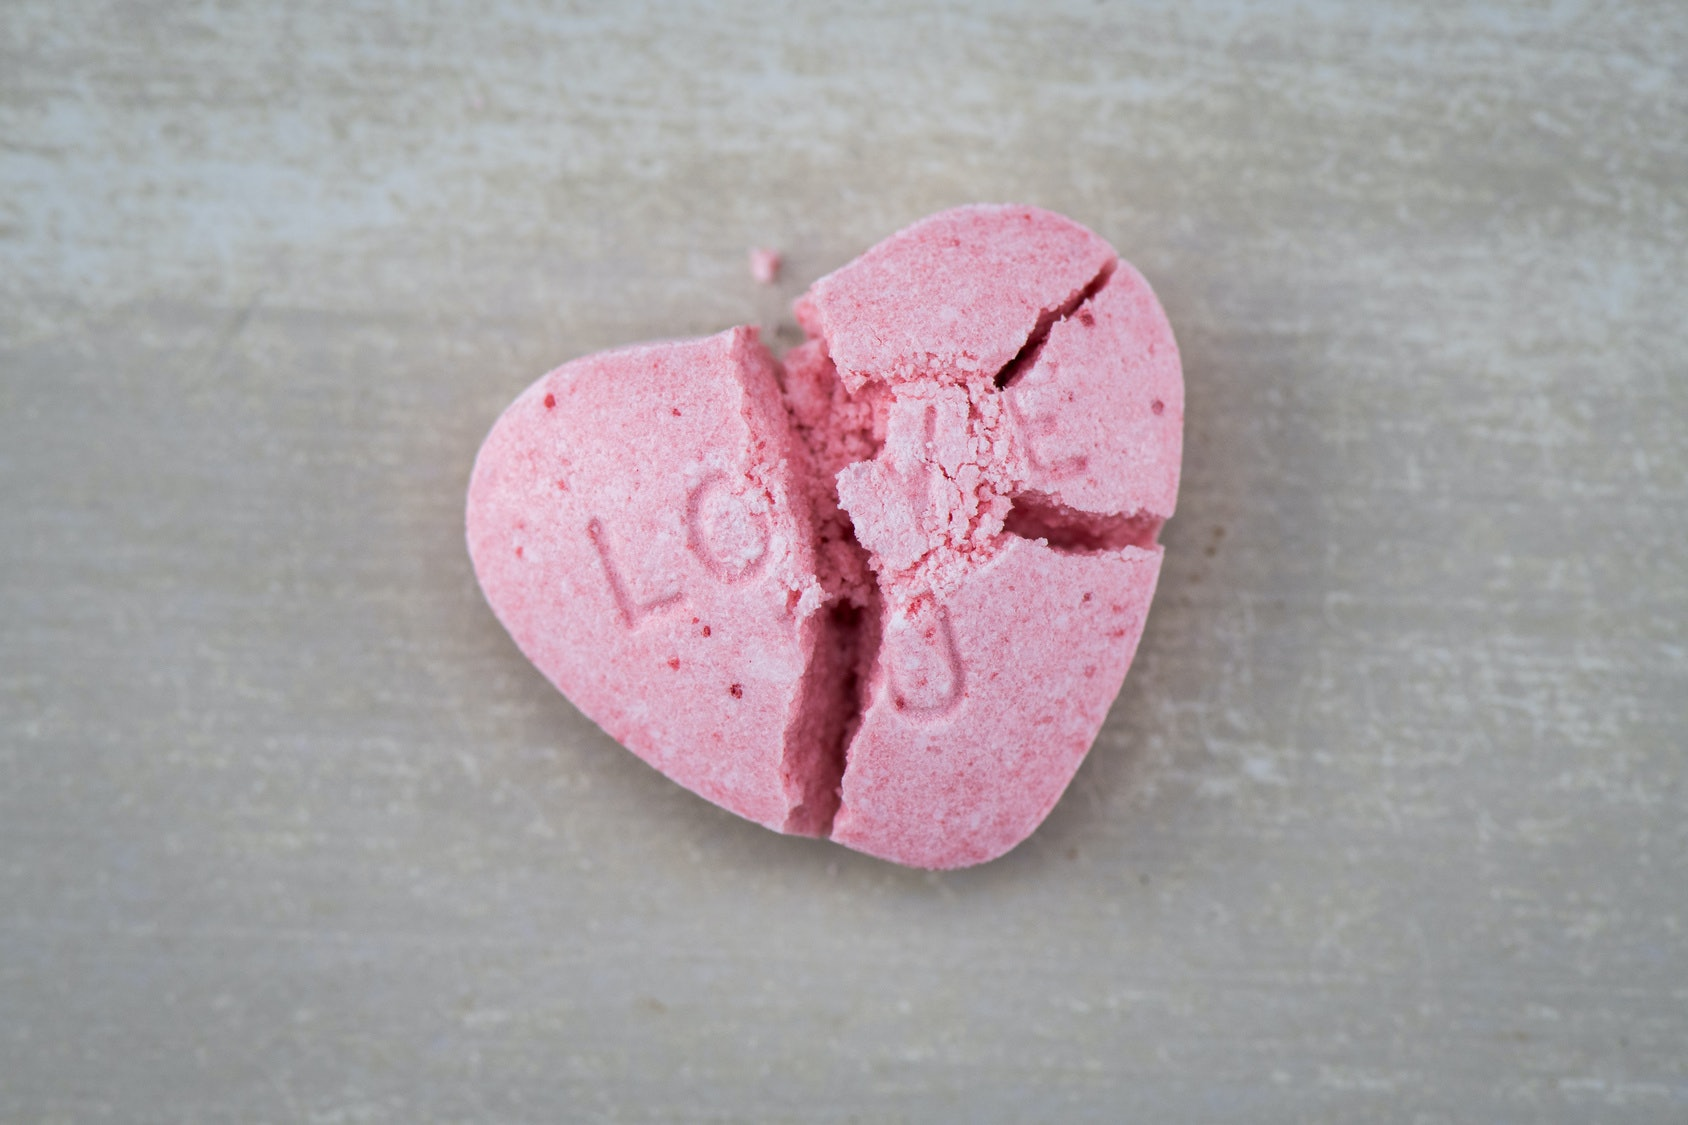 How to deal with unrequited love rejection